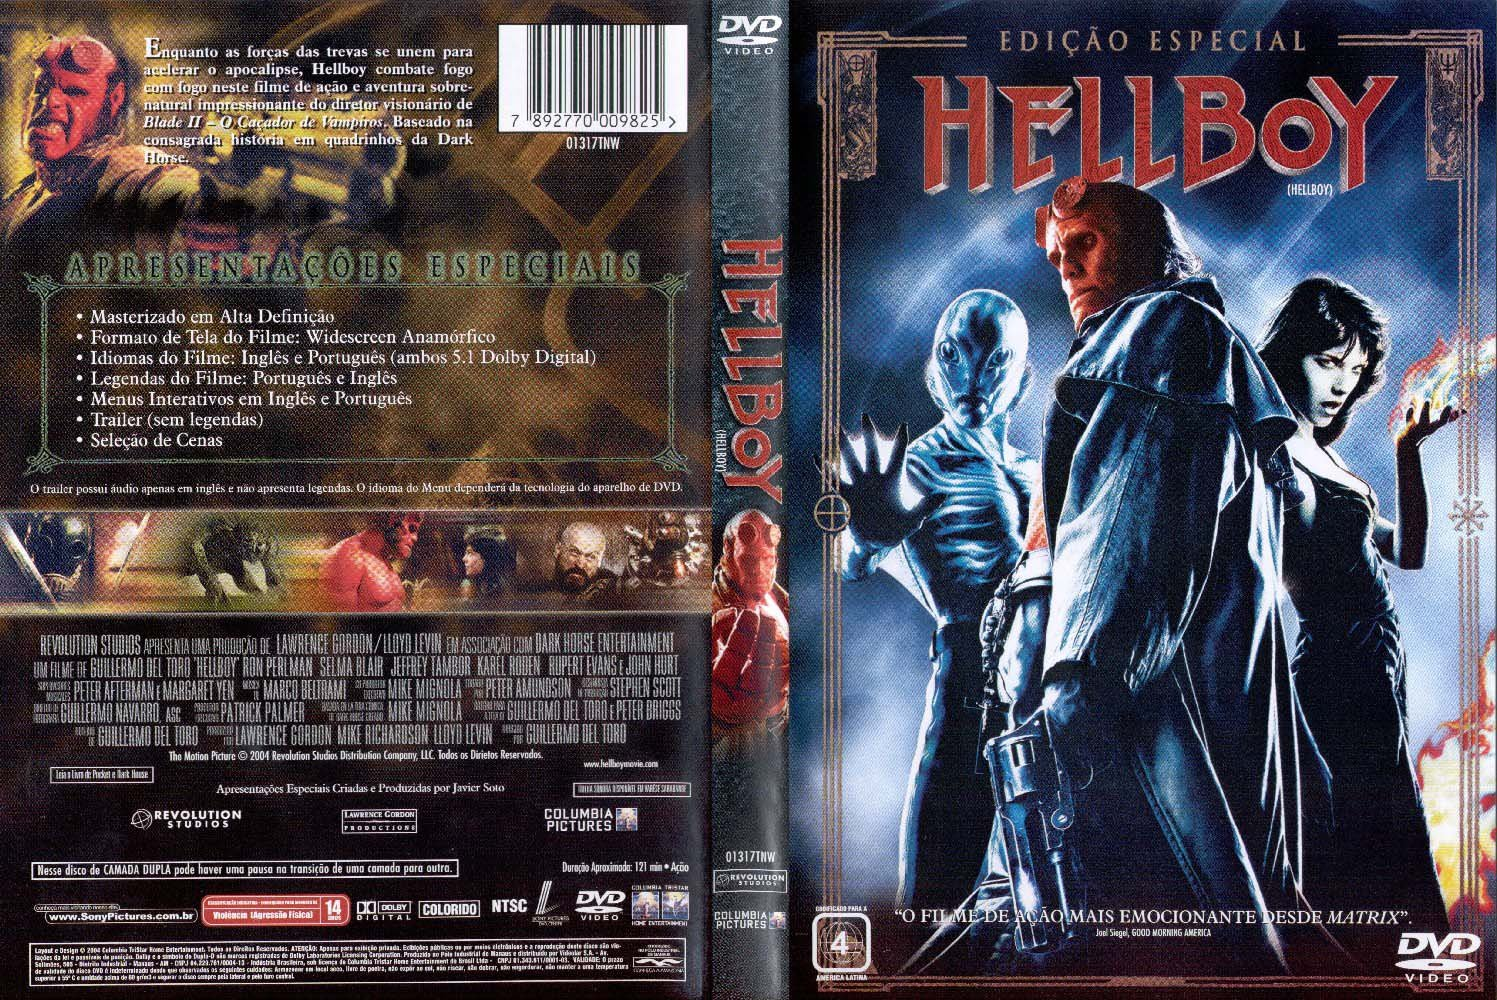 Hellboy  1 -2004- -Mg.y Mf.-